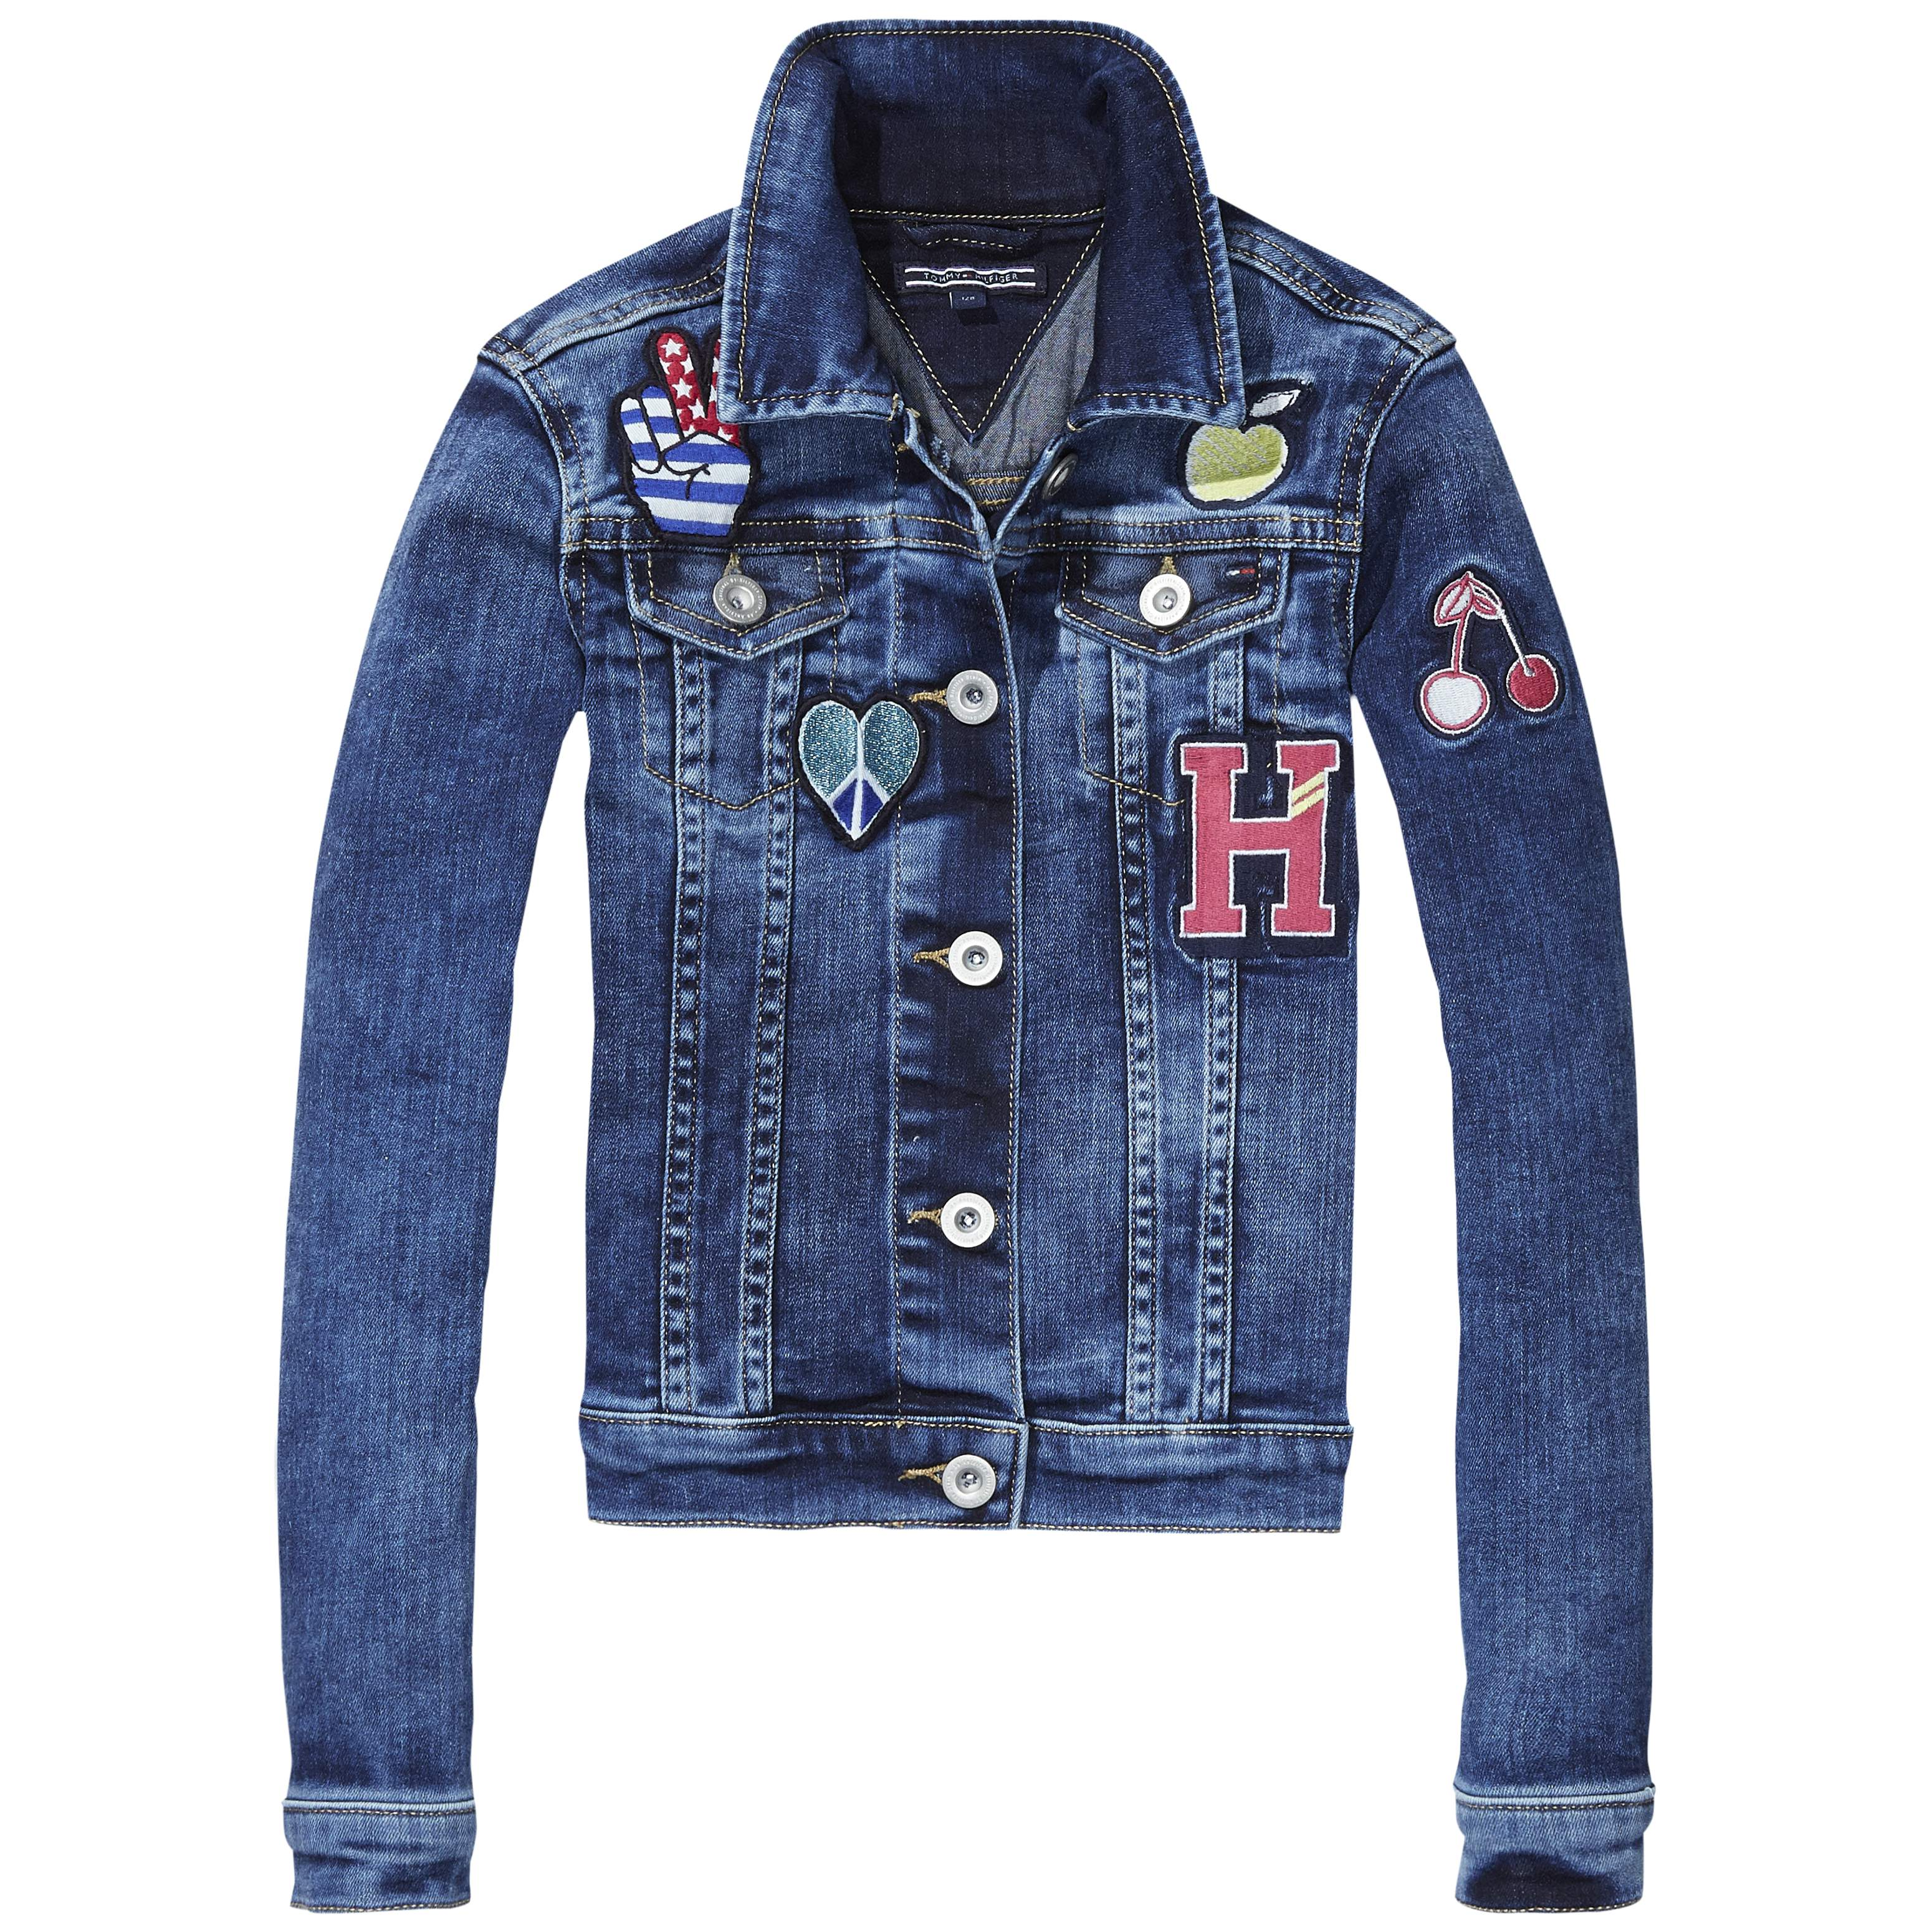 Tommy Hilfiger Jeansjacke Girls Denim Jacket Bagdget